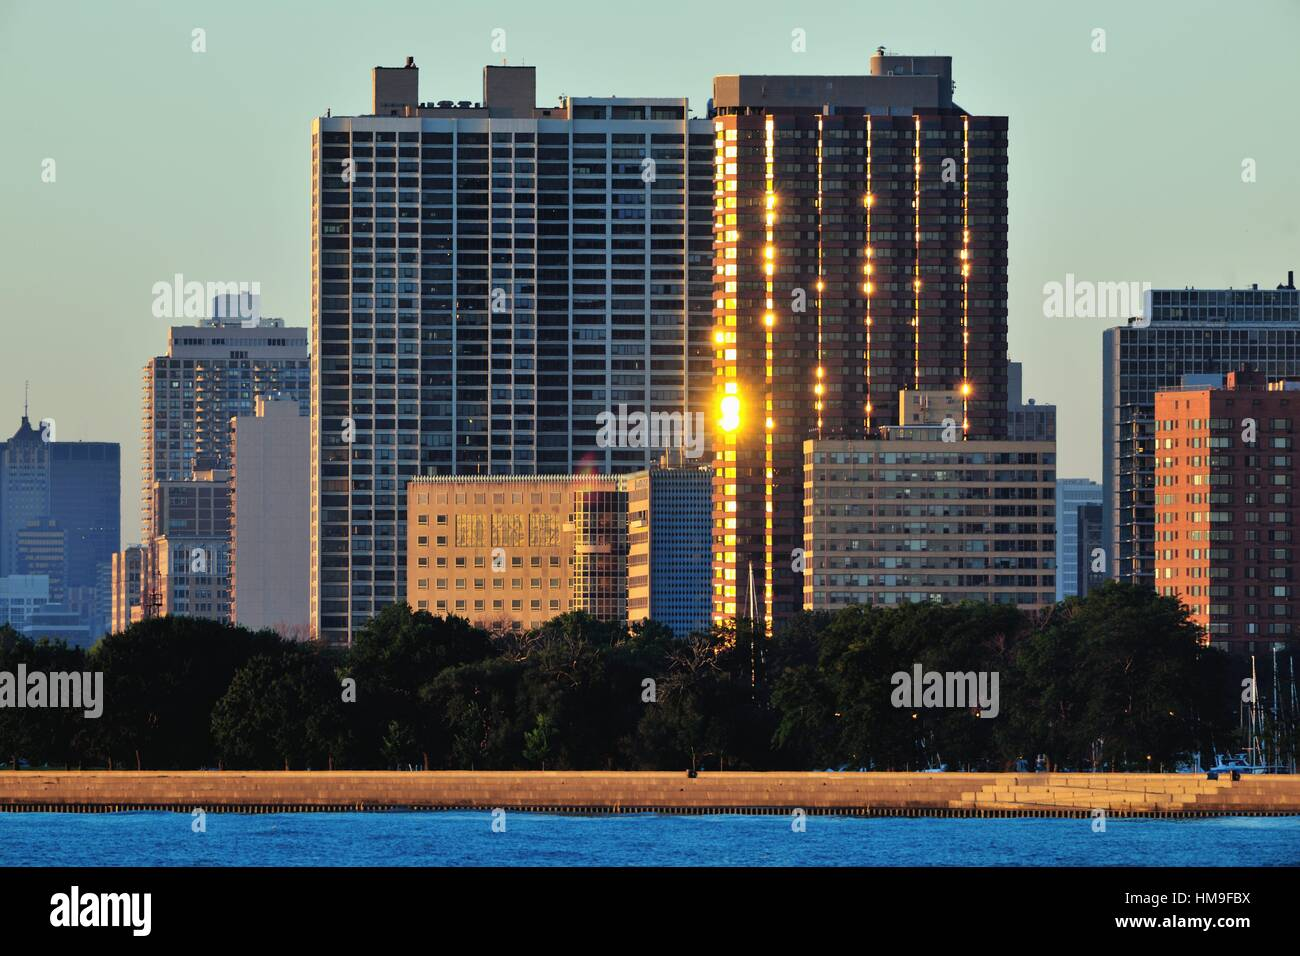 The sun reflects on windows and balconies on a high rise condominium overlooking Chicago's Montrose Harbor and - Stock Image